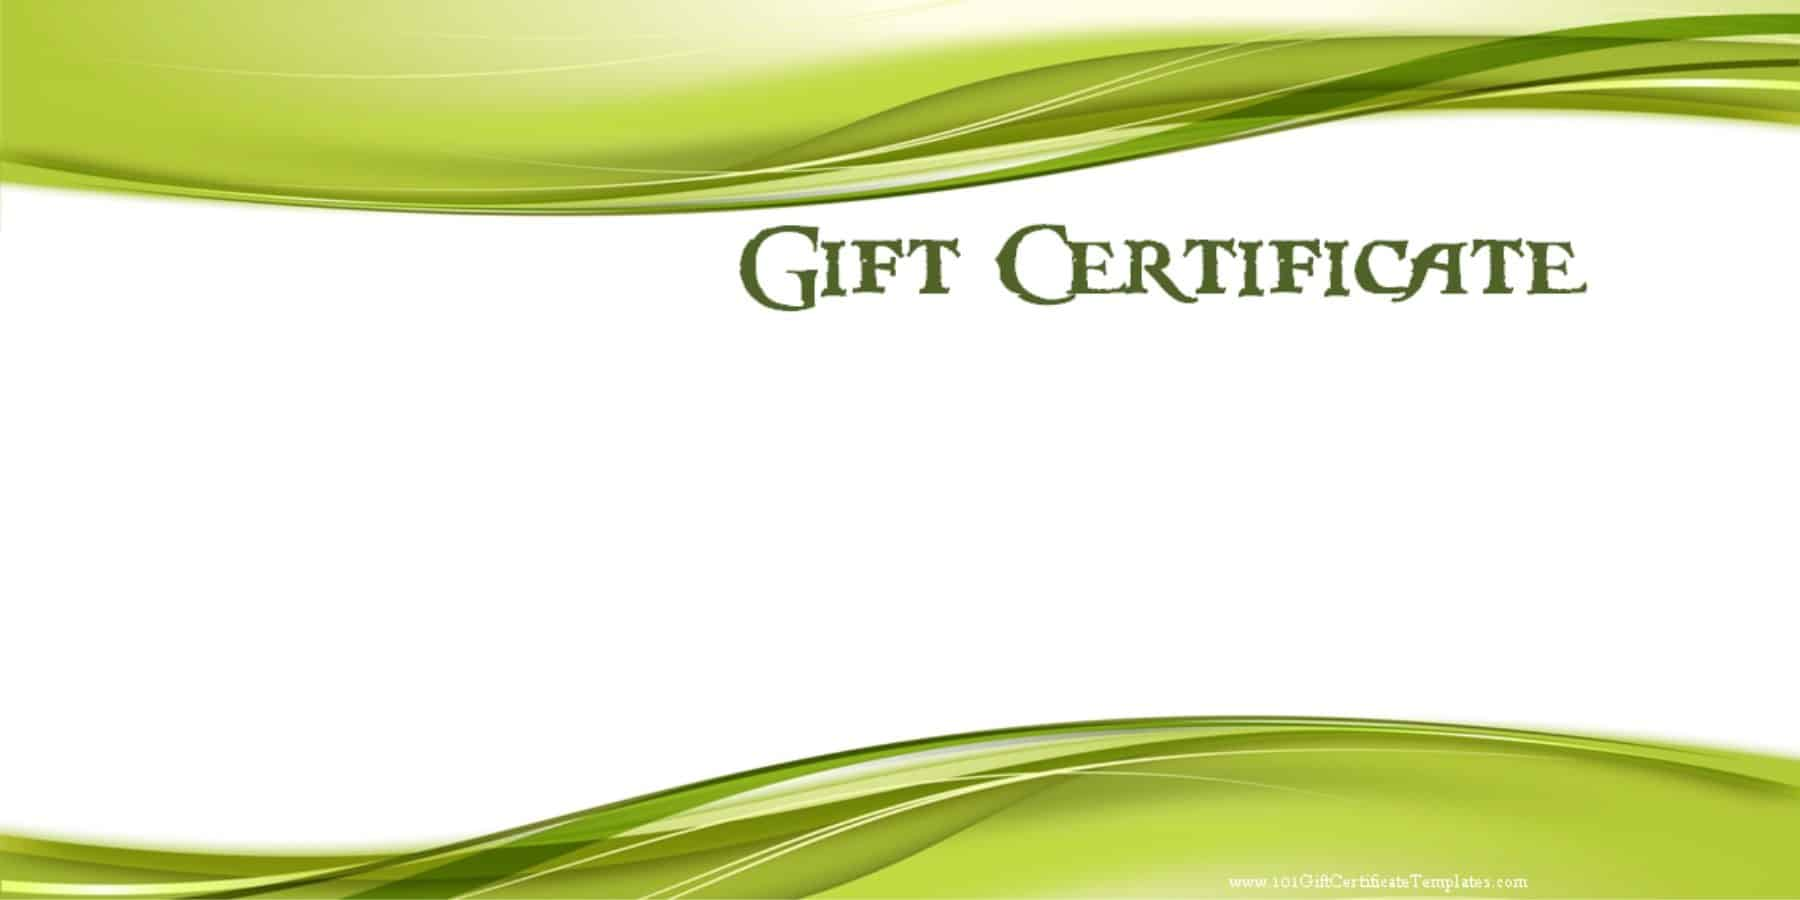 Printable gift certificate templates blank gift certificate which can be customized alramifo Image collections